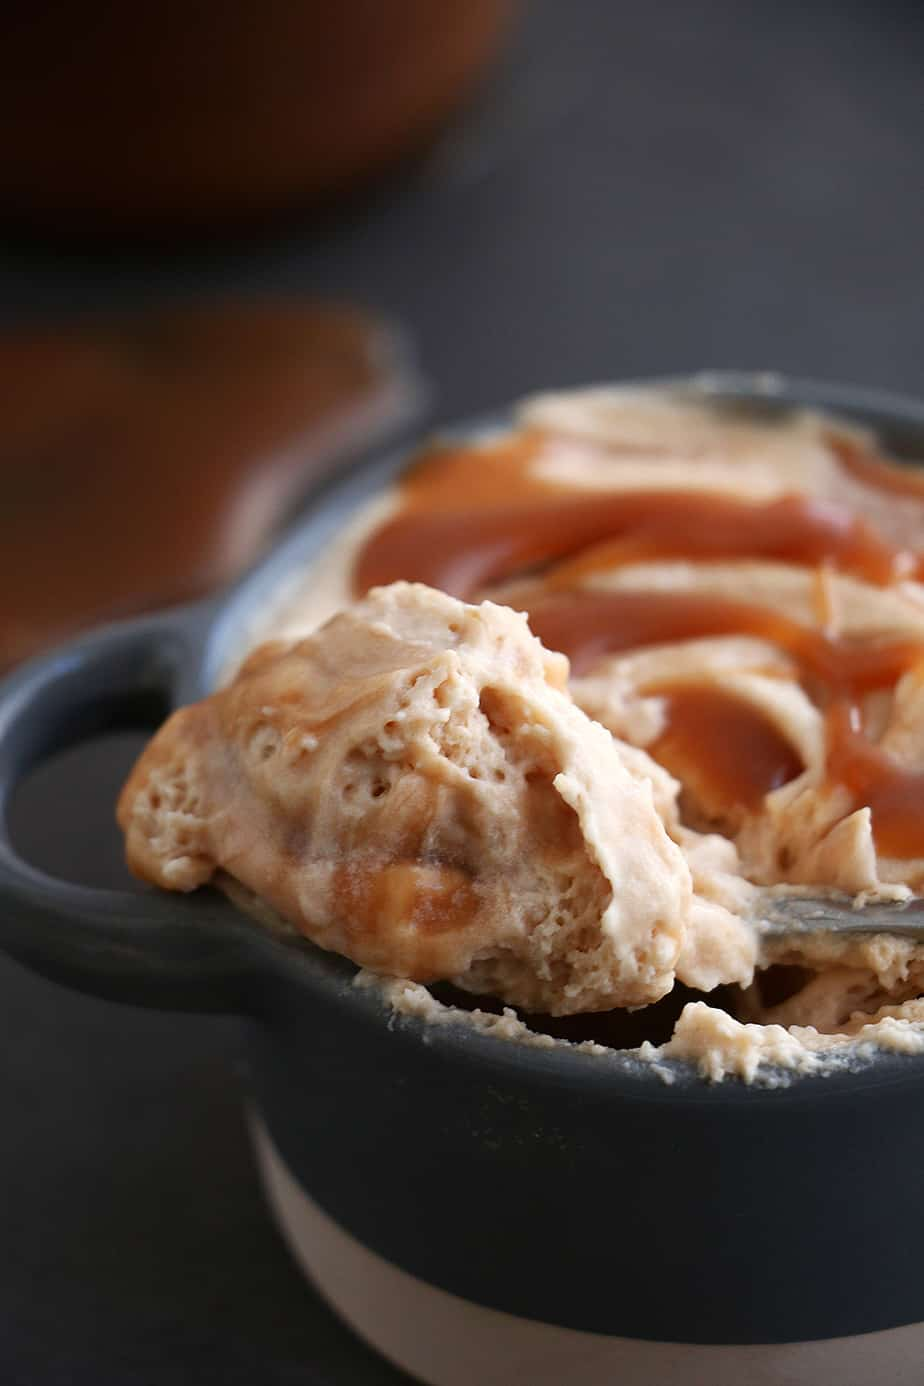 Creamy Salted Caramel Mousse – A combination of creamy, salty, fluffy and sweet. The perfect dessert for any occasion.